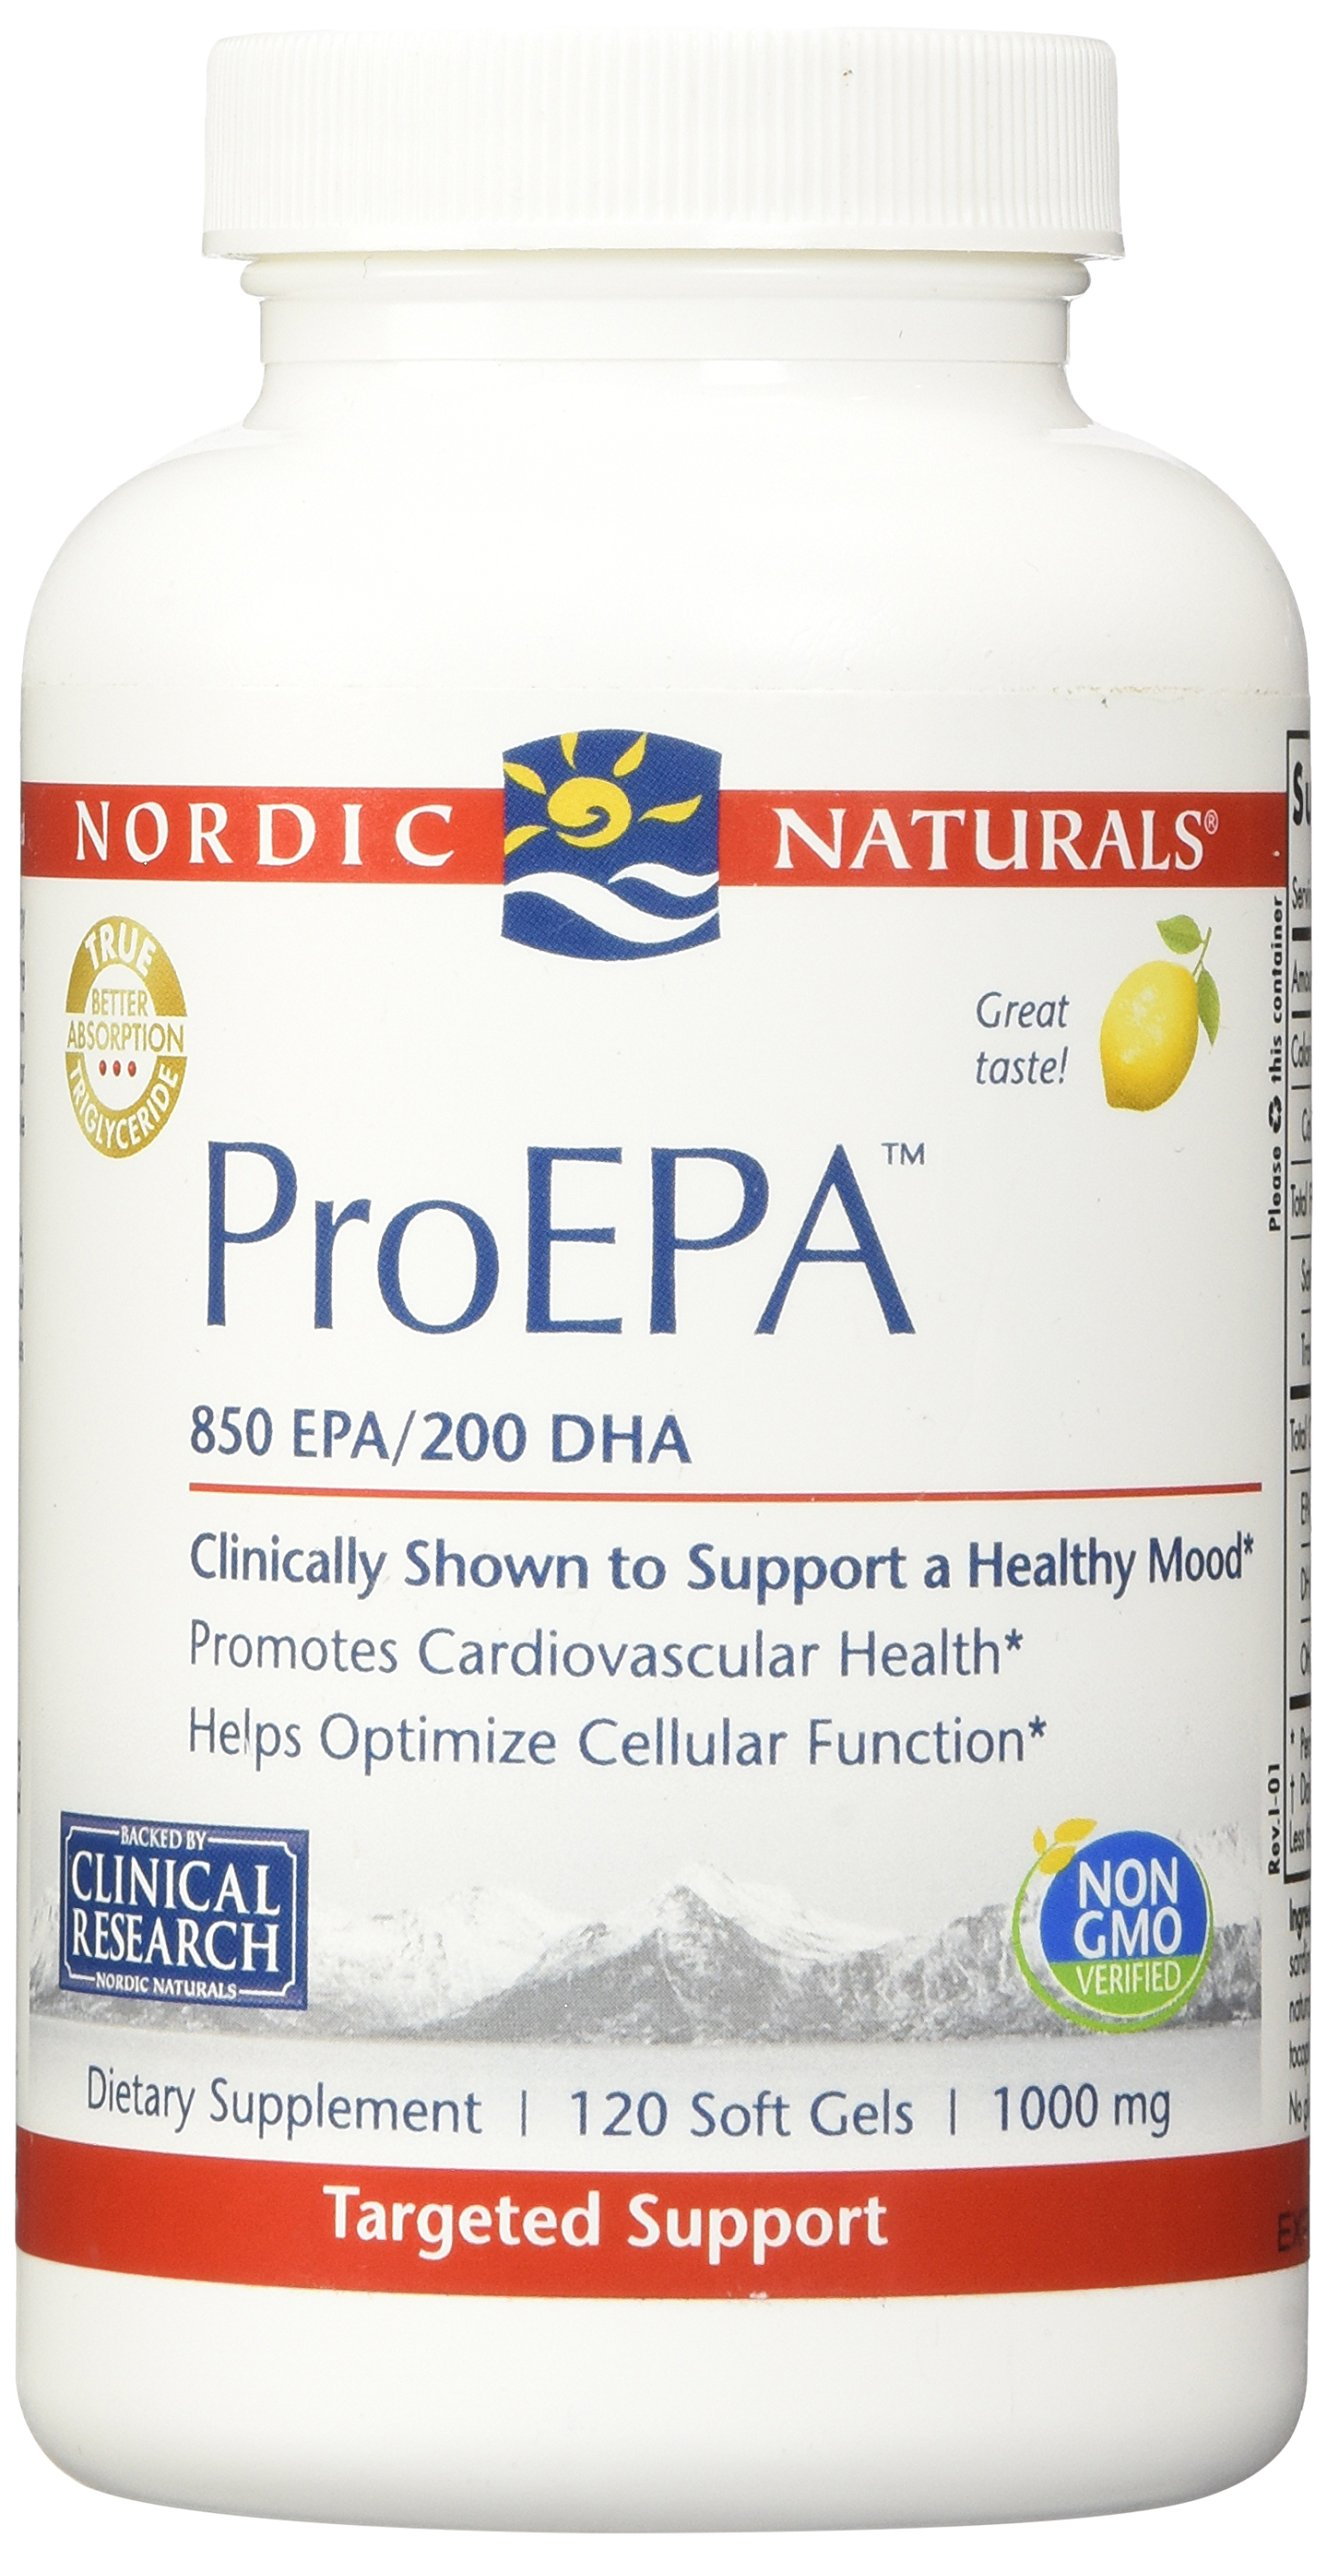 Nordic Naturals Pro - ProEPA, Promotes Cardiovascular Health, Supports Gastrointestinal Health and a Healthy Mood - Lemon Flavored 120 Soft Gels